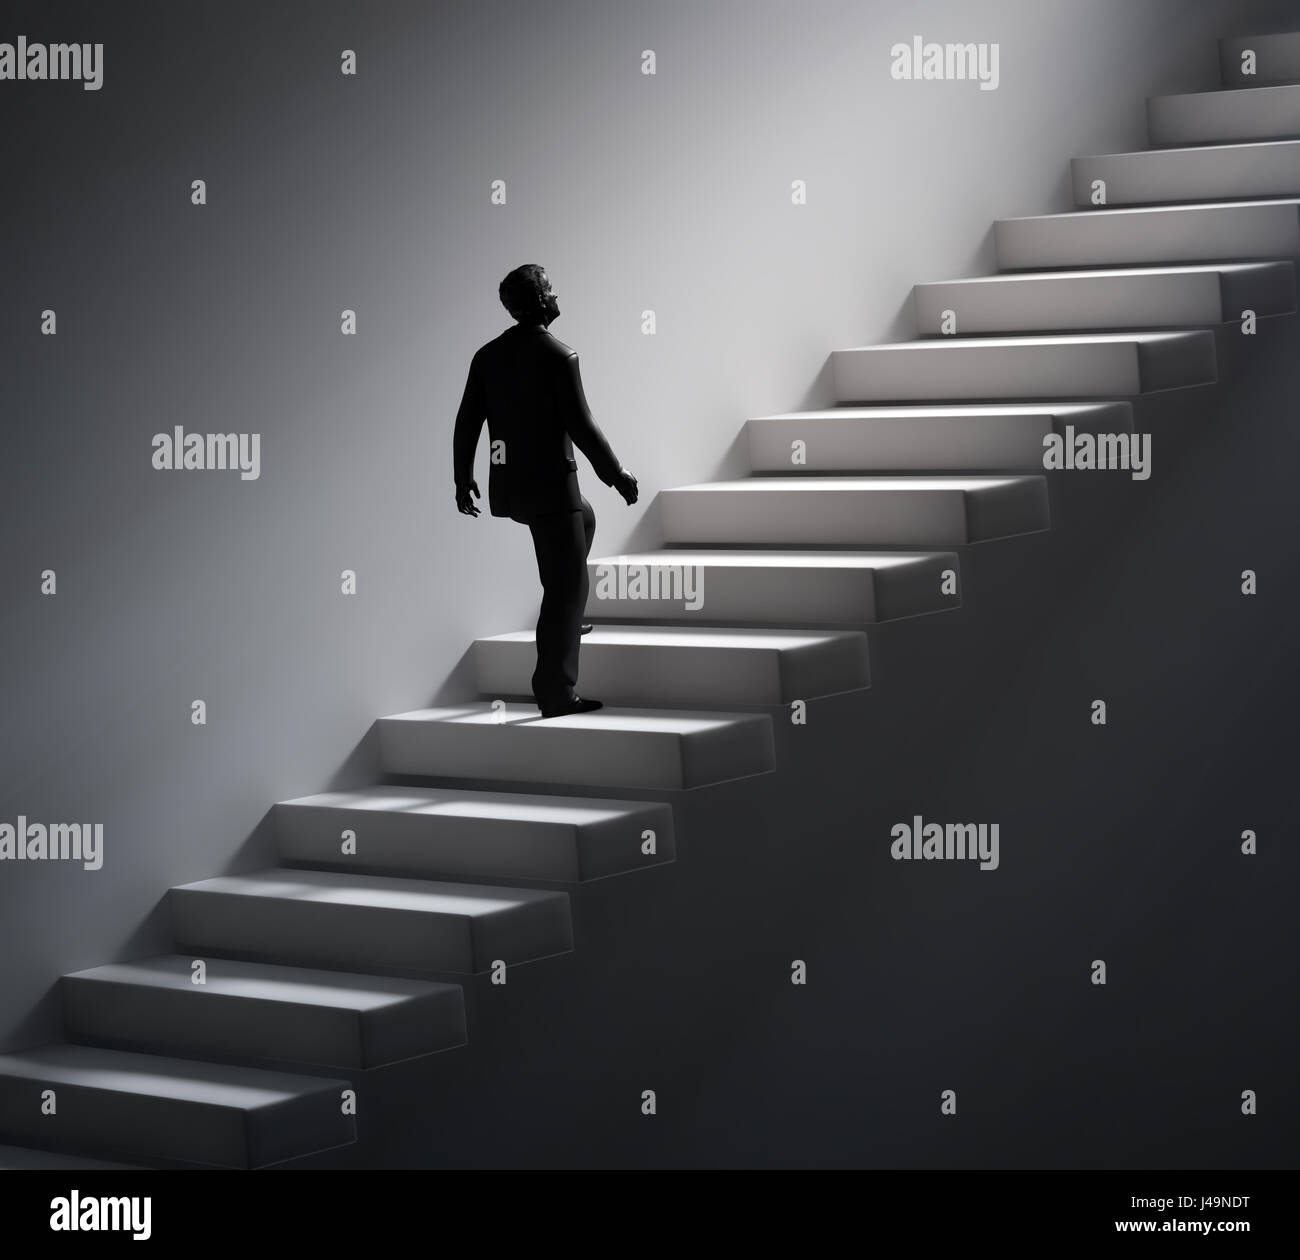 Man walking up the stairs towards light - 3d illustration - Stock Image